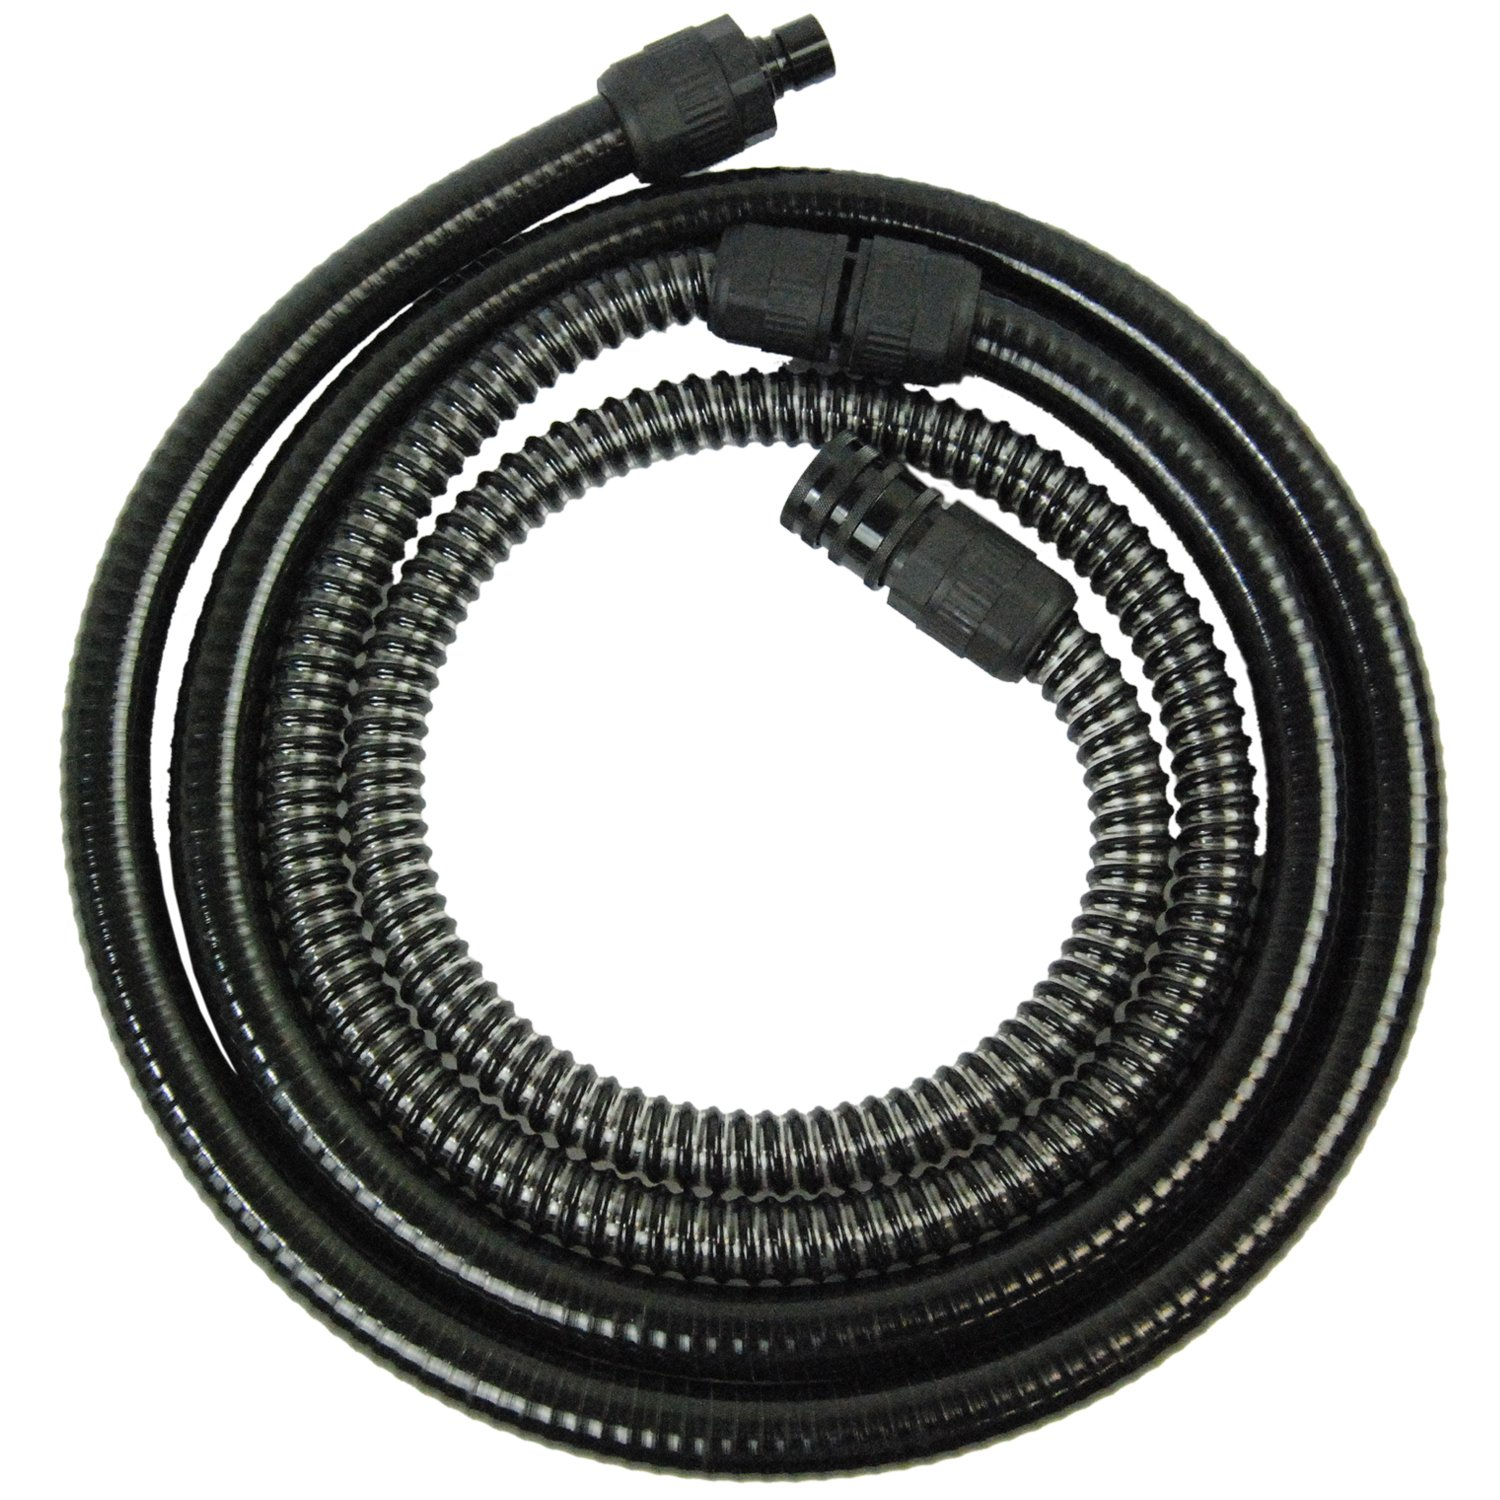 10 Foot Heavy Duty Turbine HVLP Air Hose with Quick-Connect Coupler & Plug